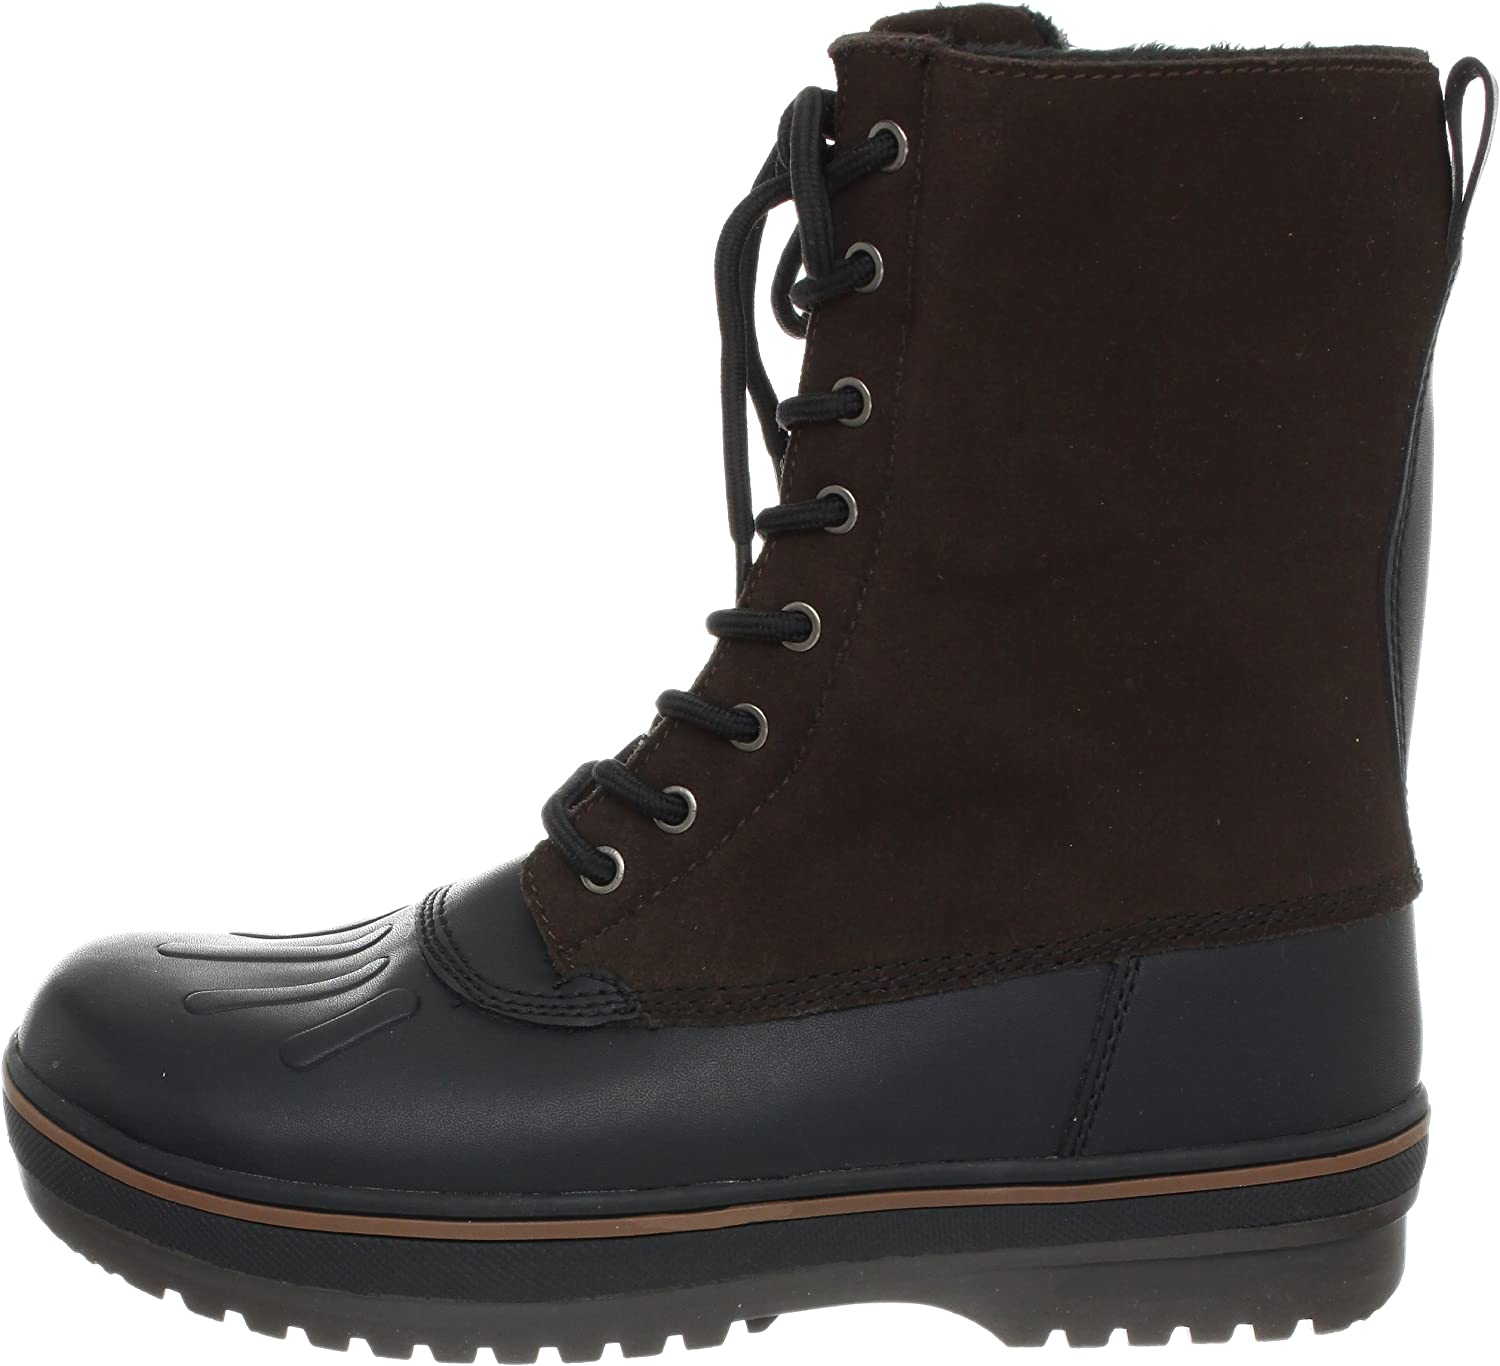 Storm by Cougar Men's Squire Snow Boot